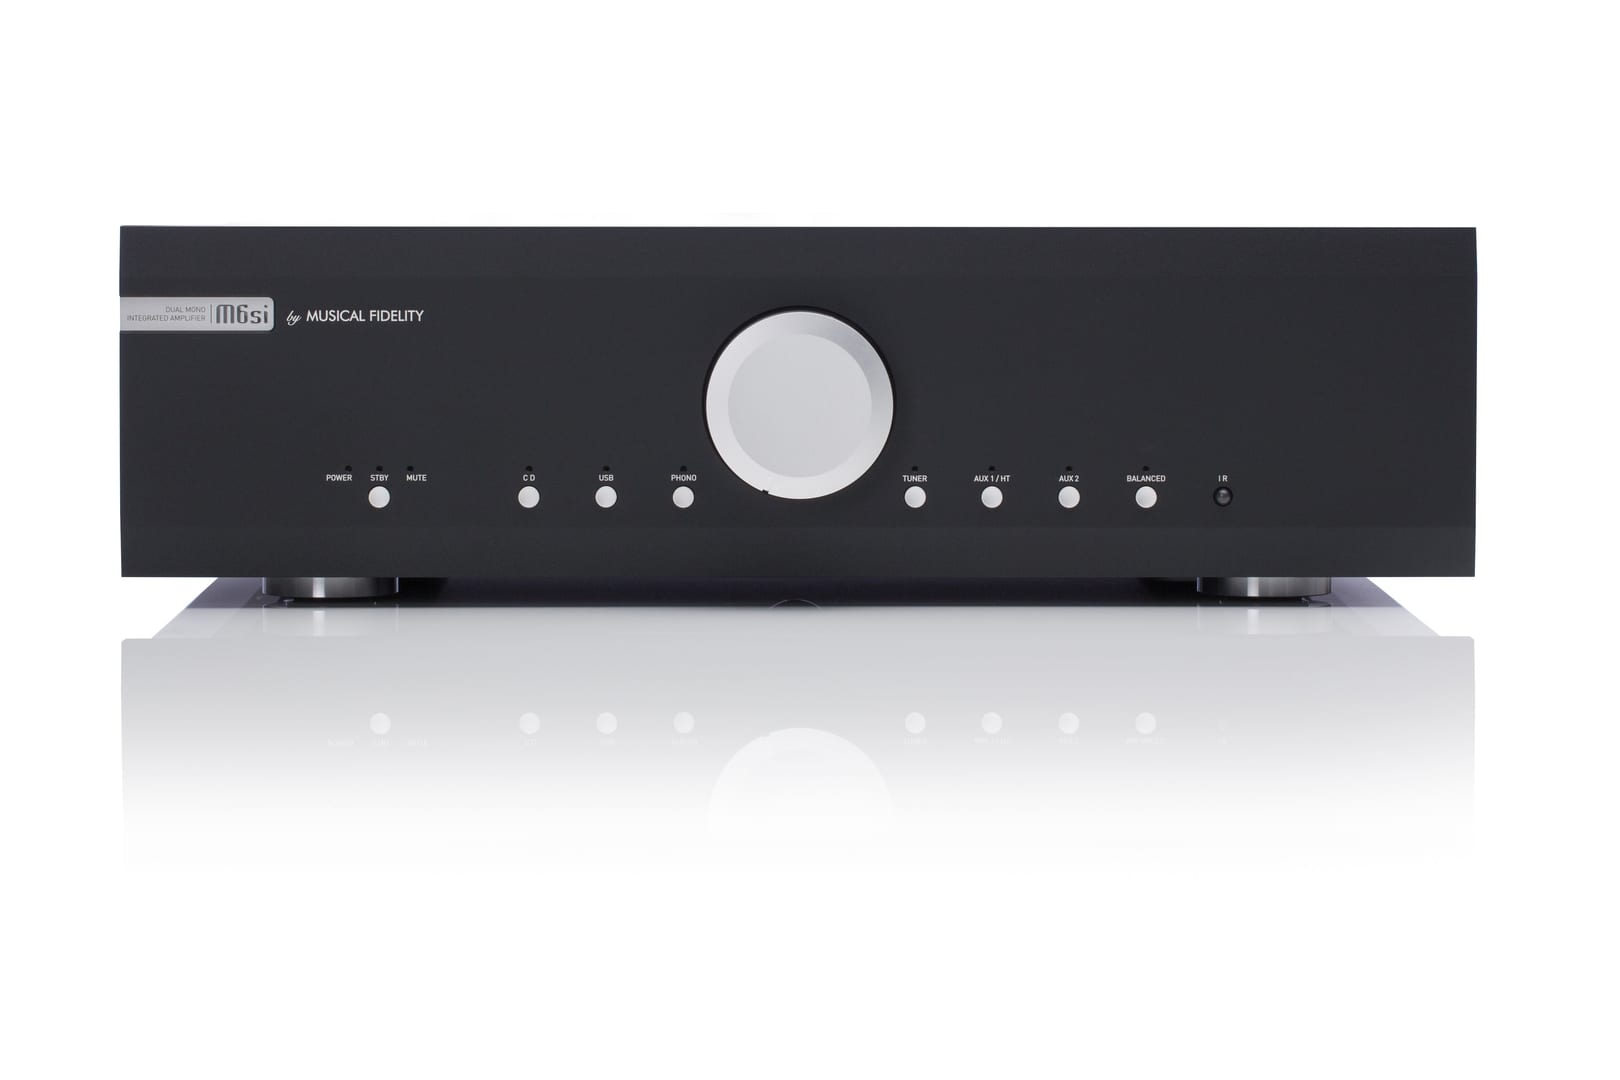 New M6si Integrated Amplifier from Musical Fidelity